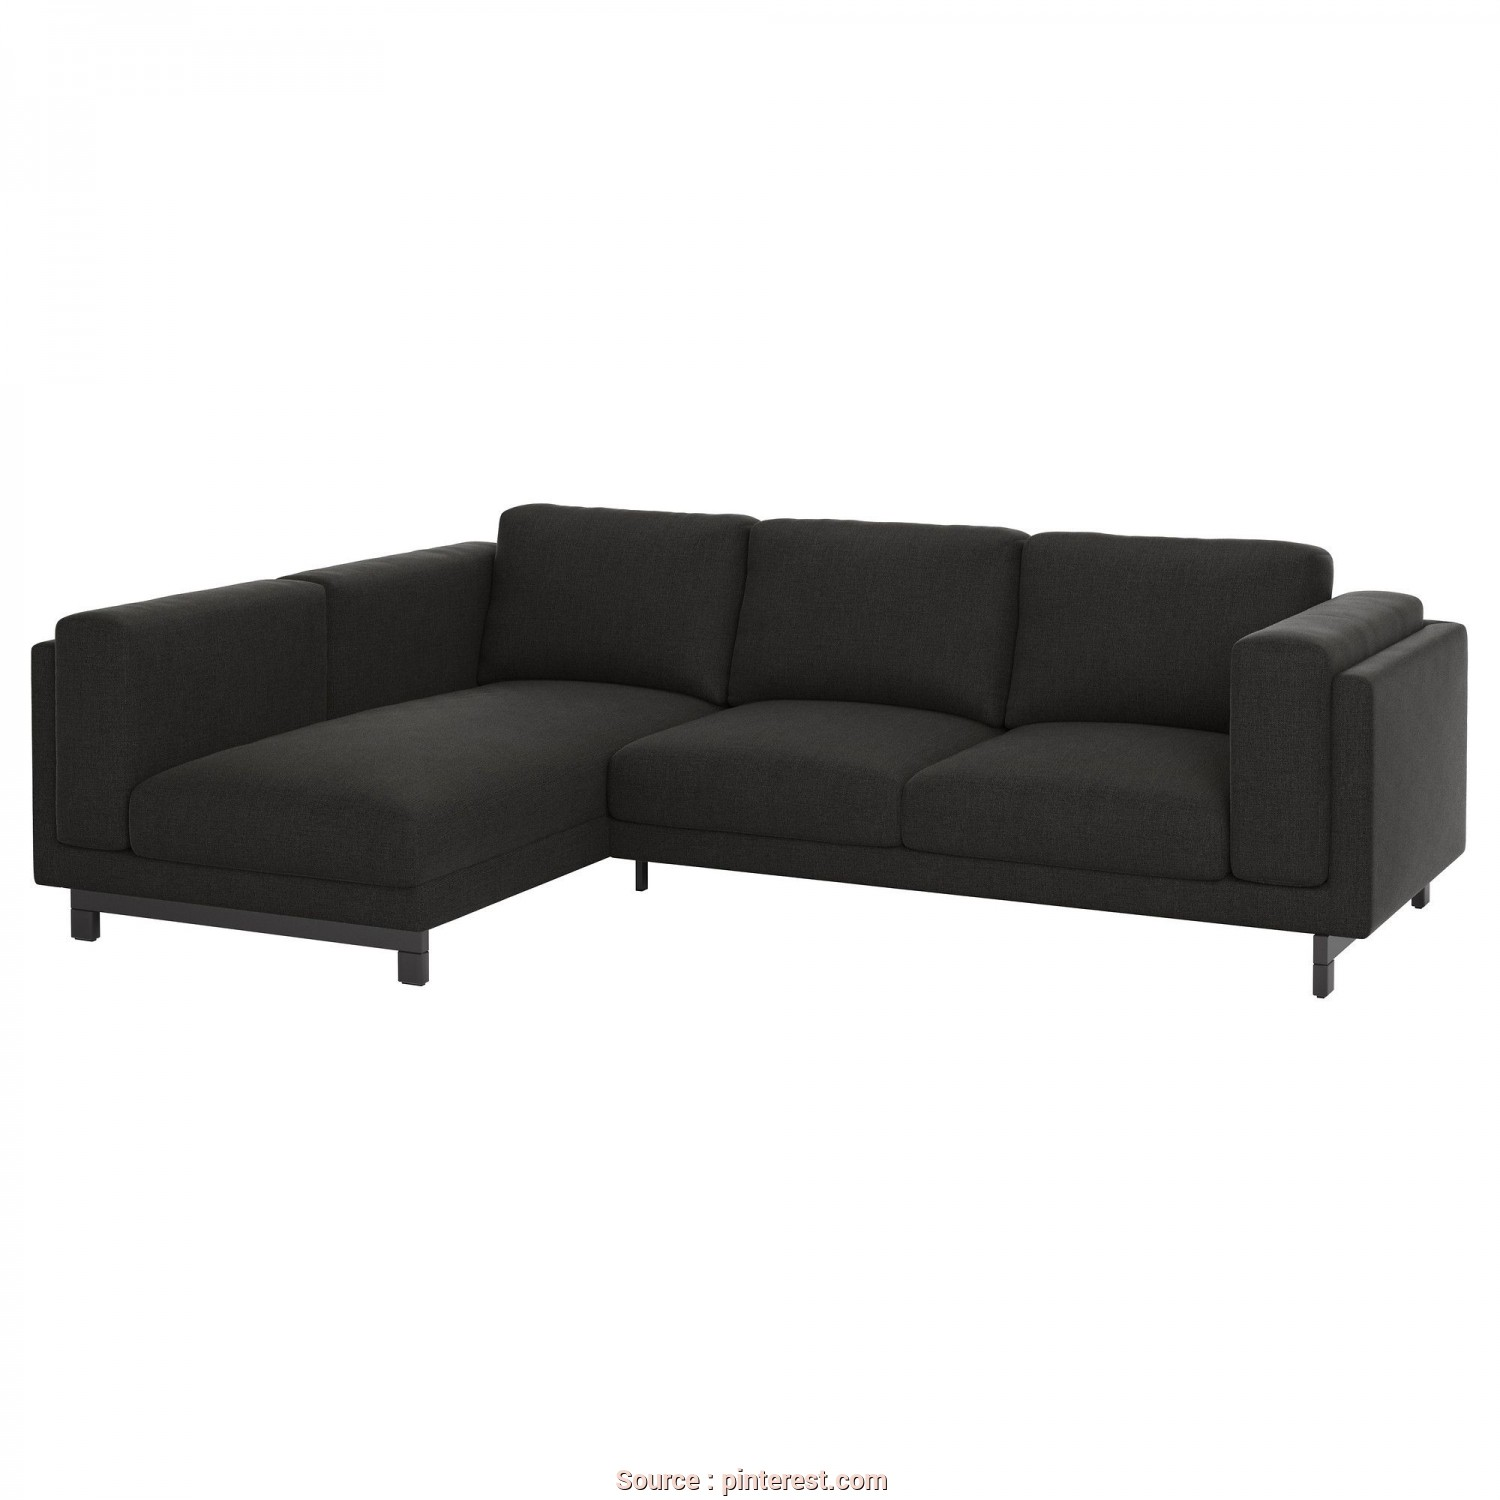 Ikea Backabro, Bettsofa, Rustico NOCKEBY Loveseat With Chaise, Left, Tenö Dark Gray/Wood, IKEA